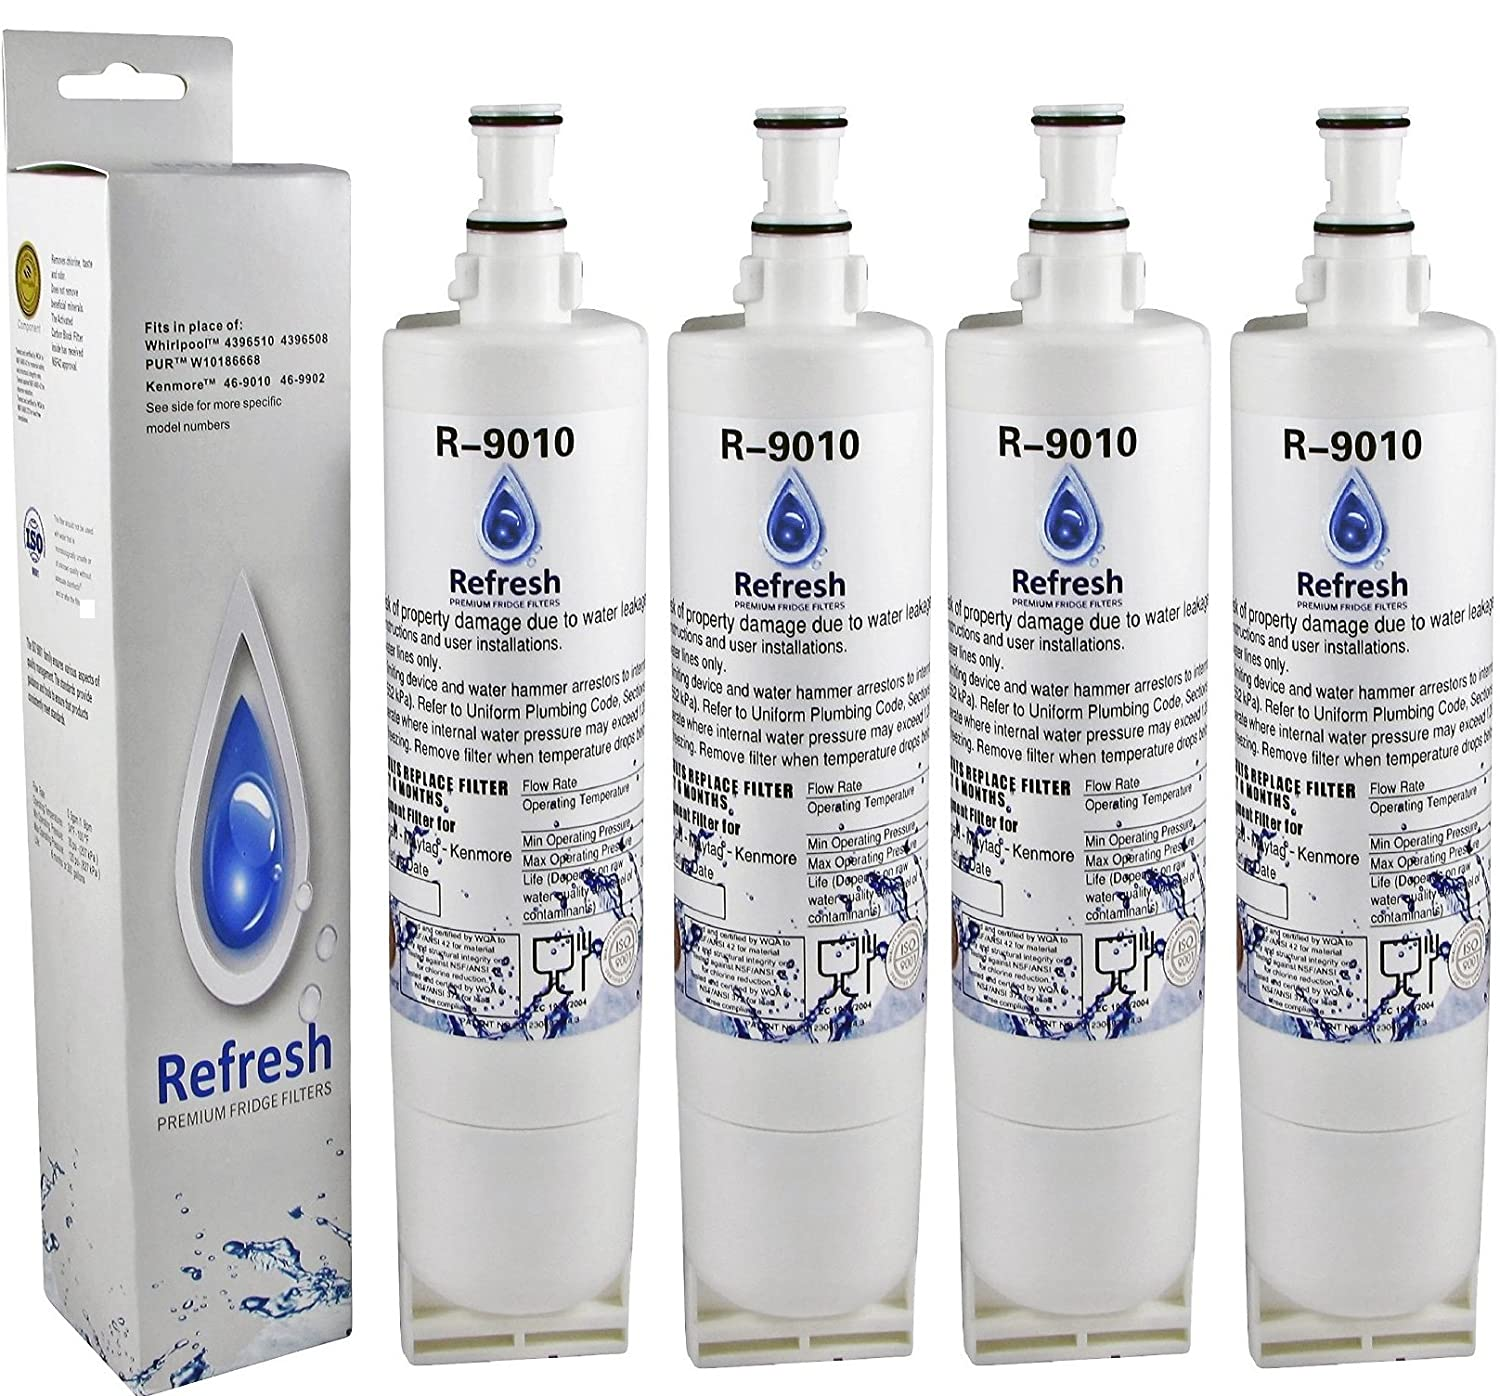 kenmore 469081. amazon.com: kenmore 46-9010, 49-9085 compatible refrigerator replacement water filter (4-pack): home improvement 469081